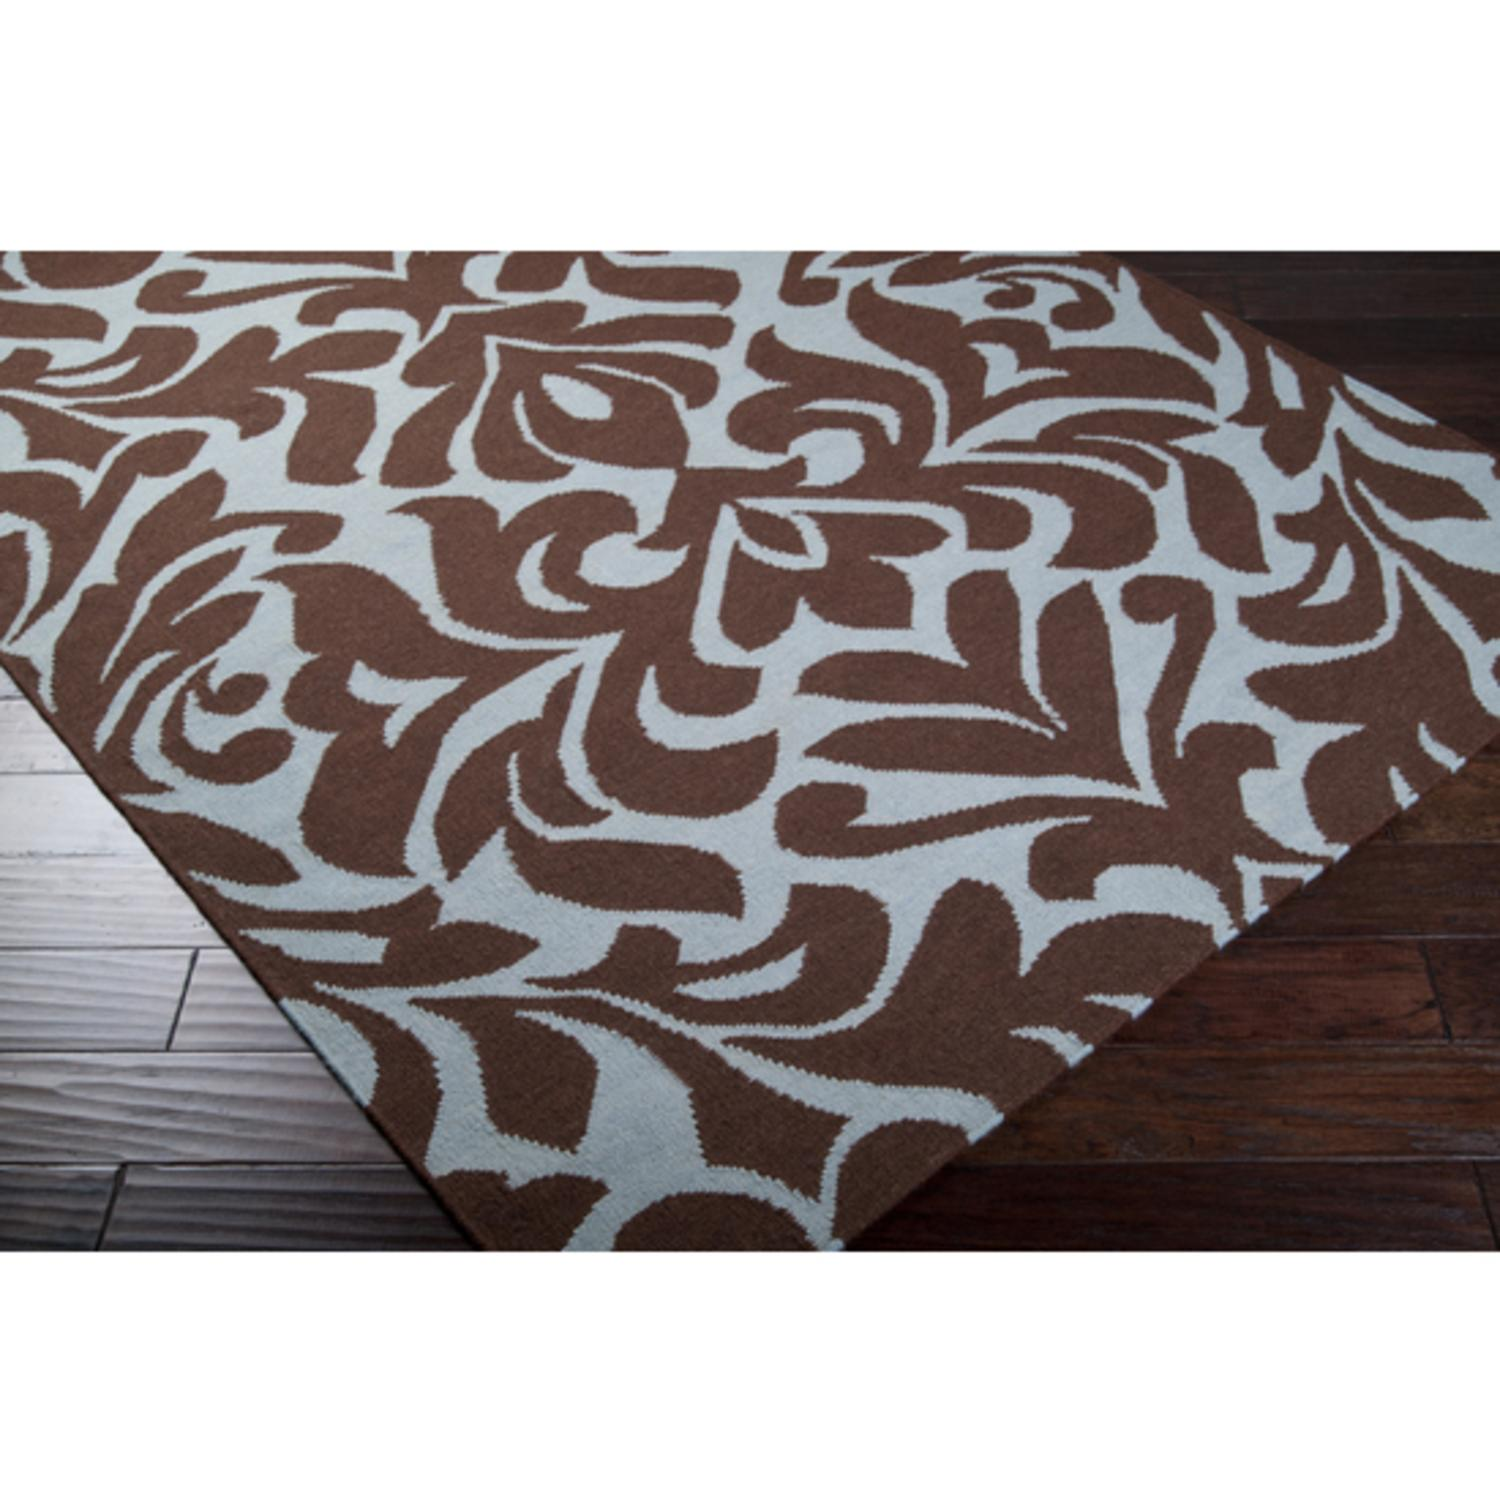 2' x 3' Floral Brise-Soleil Chocolate Brown Wool Area Throw Rug